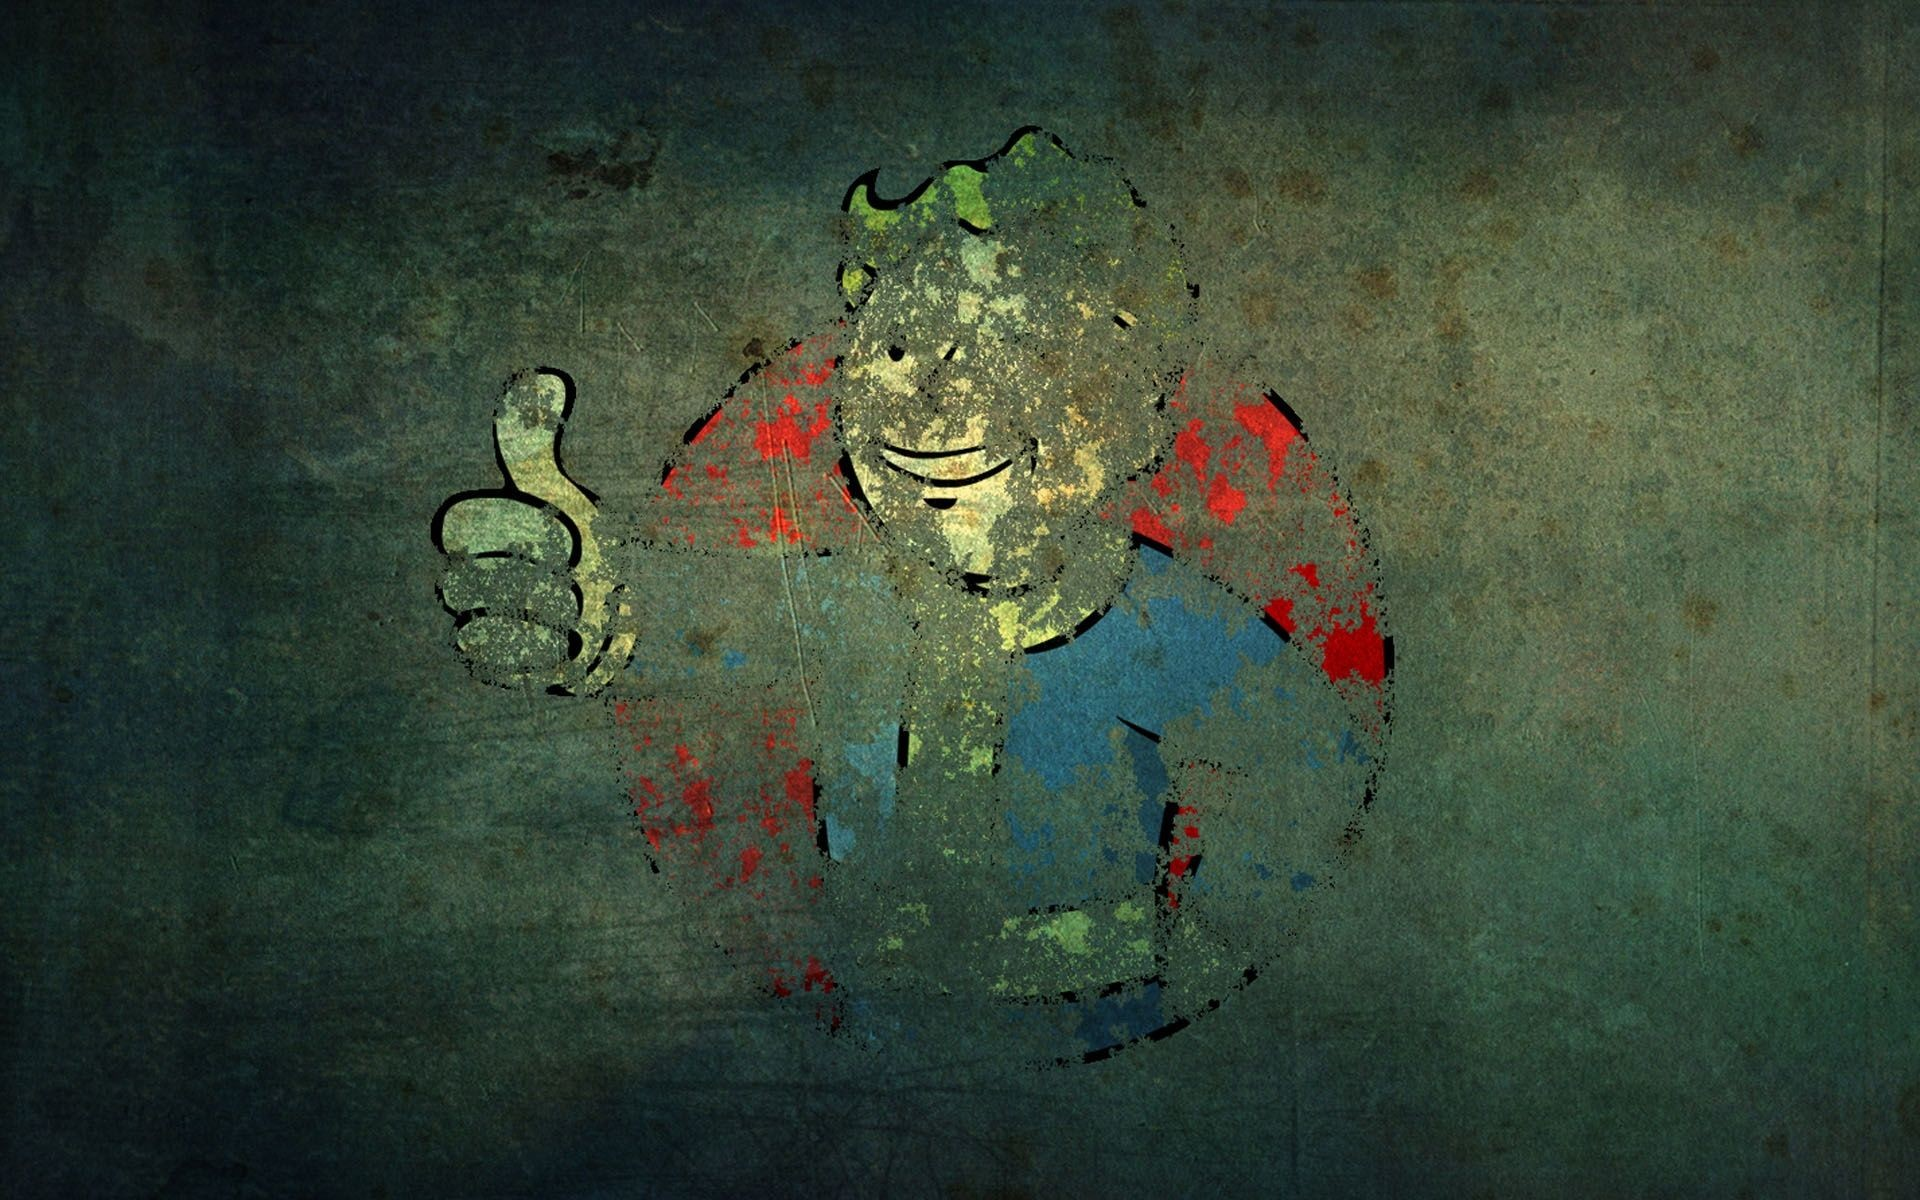 icon Fallout wallpapers and images – wallpapers, pictures, photos